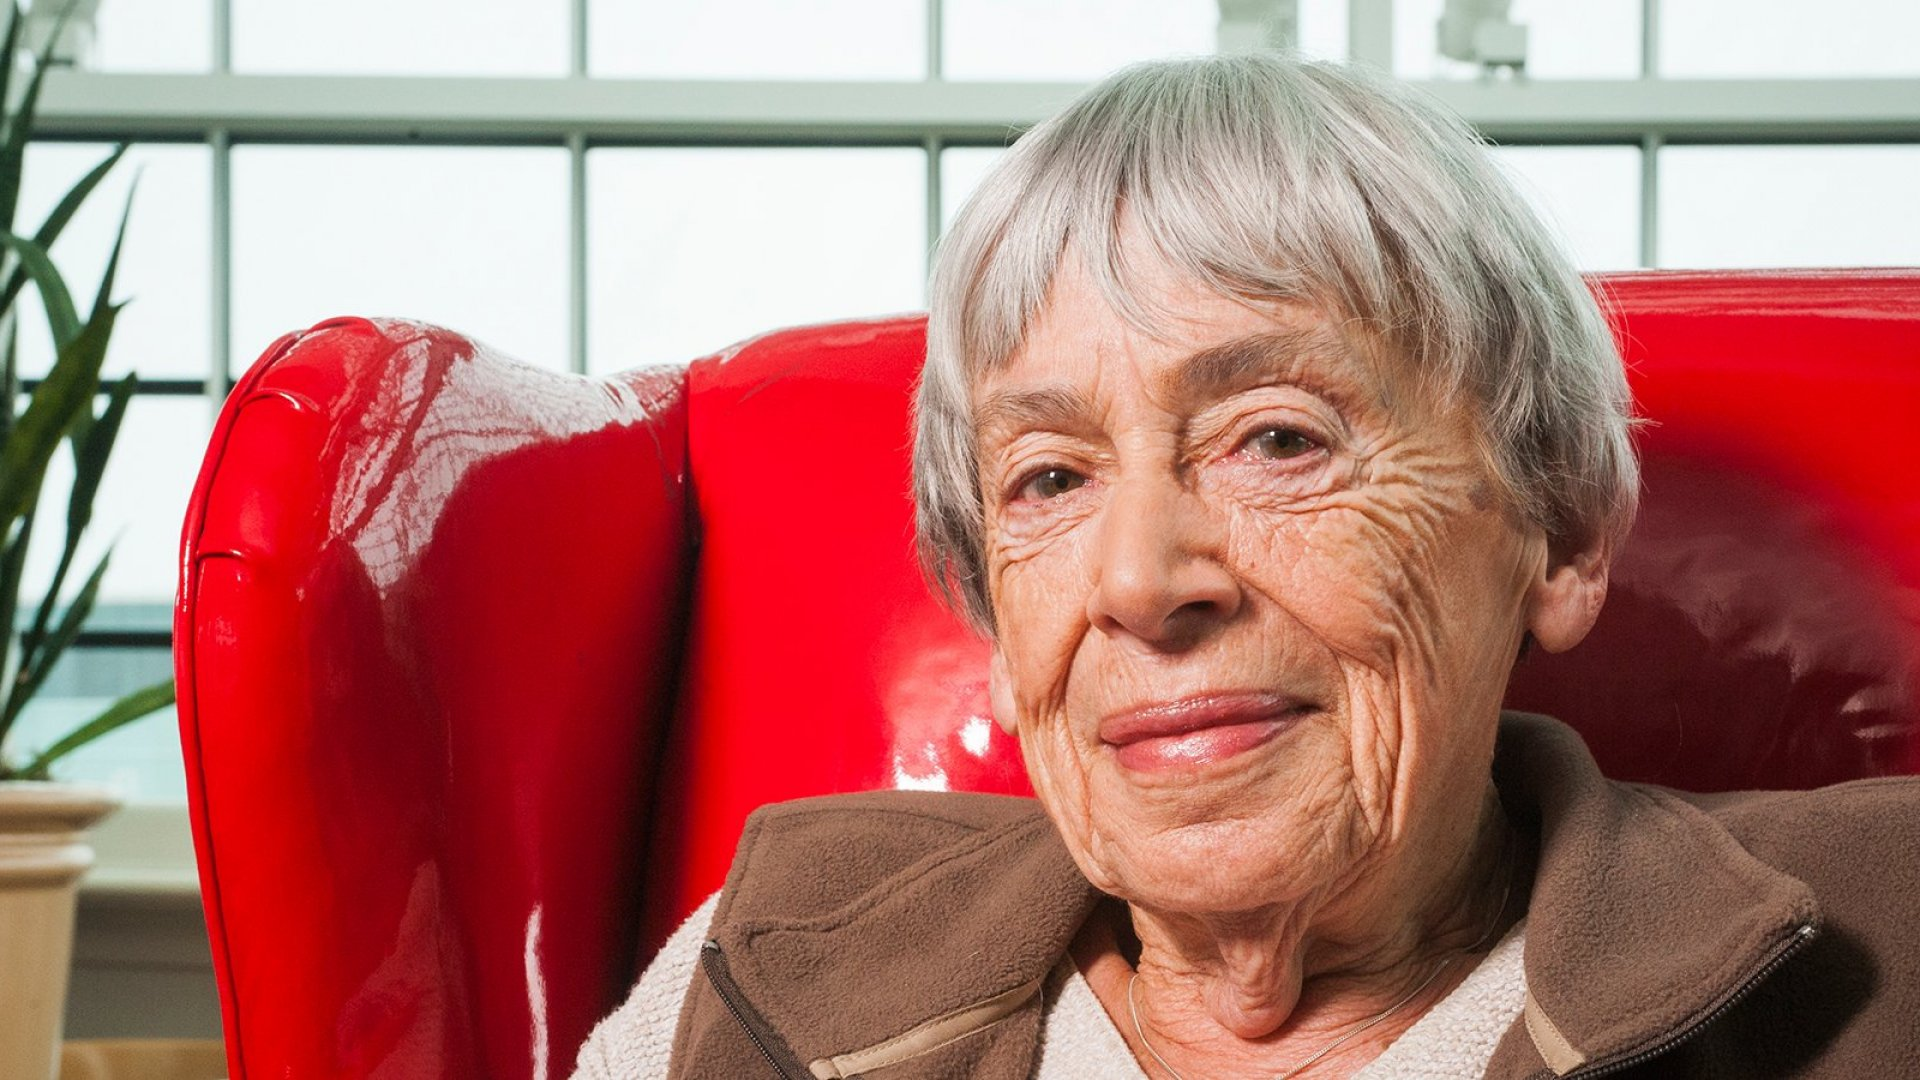 Ursula K. Le Guin, giving the publishing industry a piece of her mind at the National Book Awards in 2014.